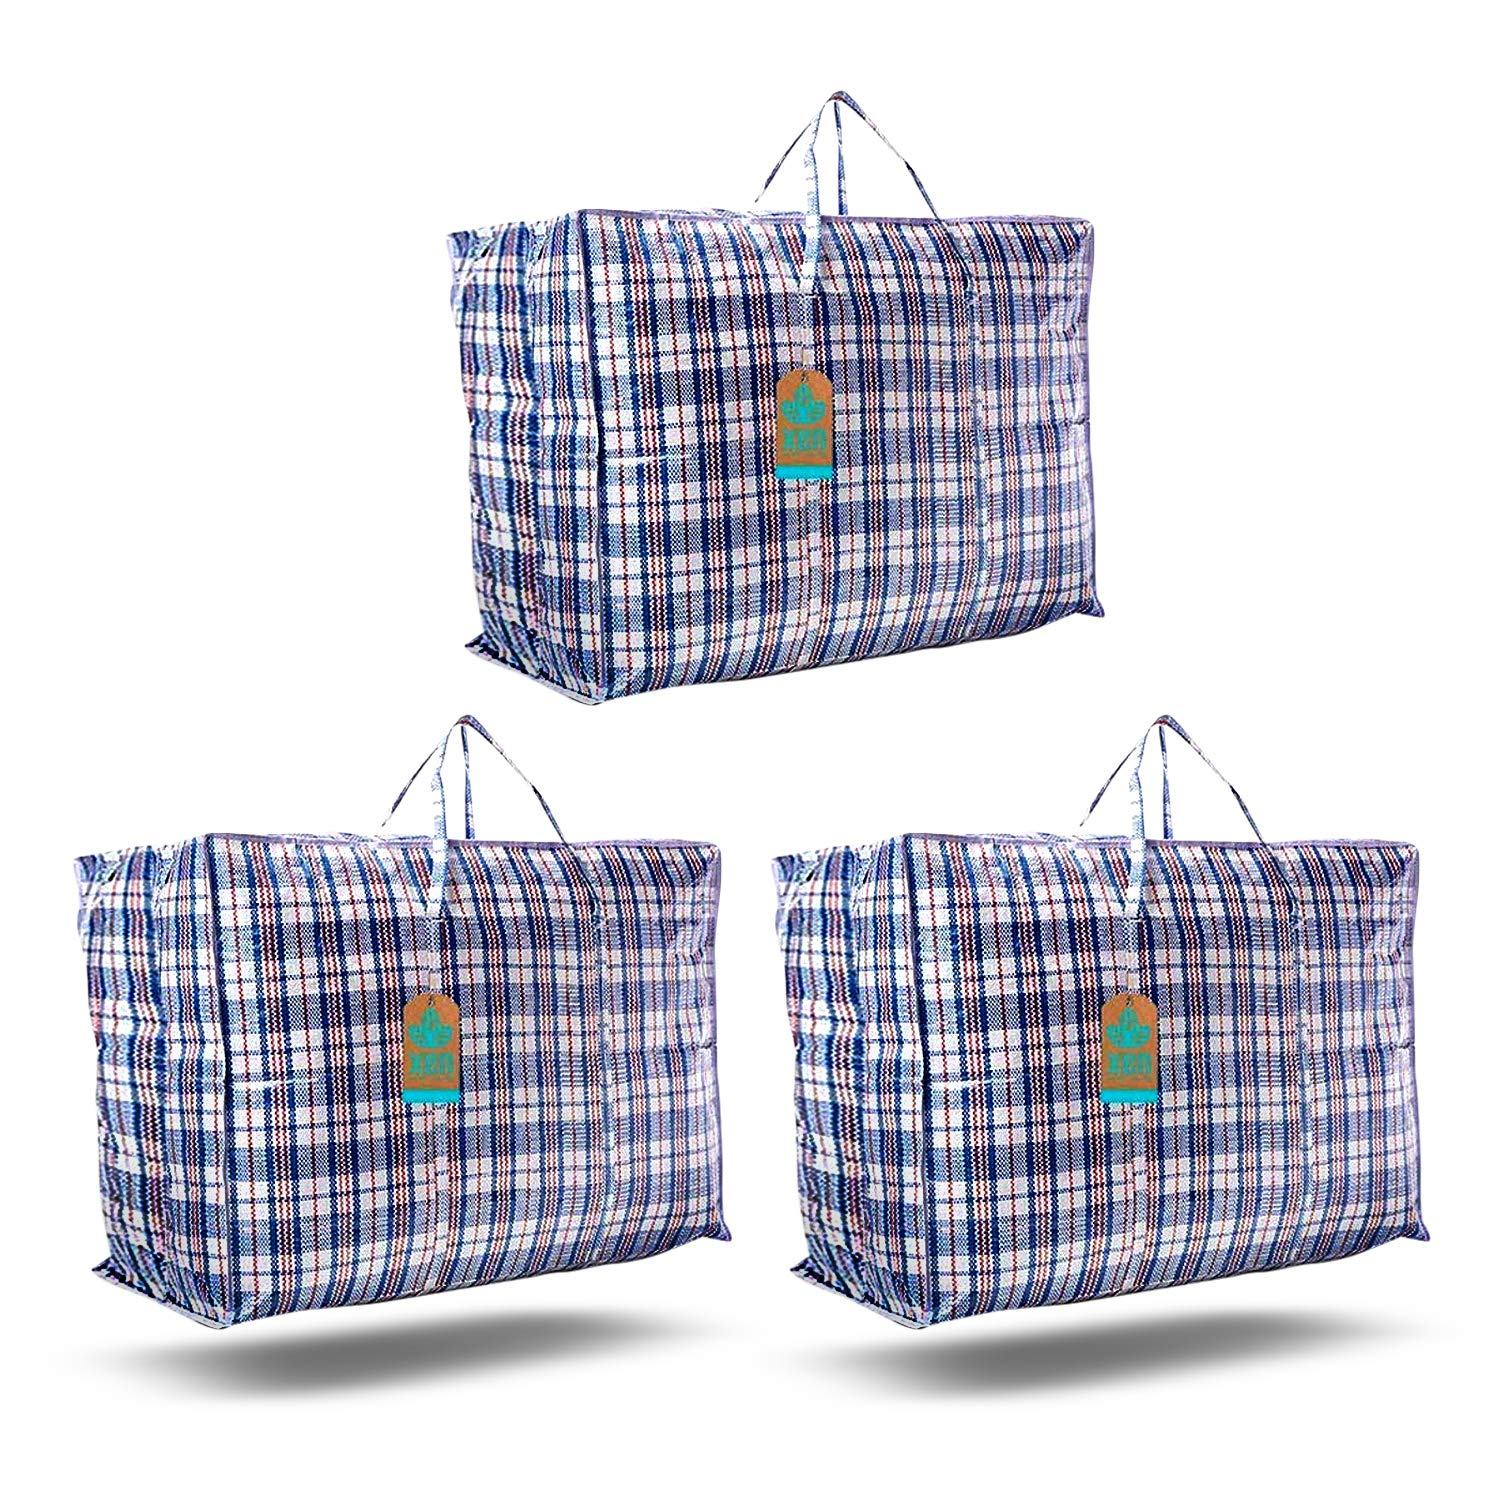 Xen Labs Large Strong Zip Waterproof Laundry Bags Shopping Mrs Hinch Closet Organiser Heavy Duty Moving Bags Garment Rack Travel 3 Pack Buy Online In Cayman Islands At Cayman Desertcart Com Productid 93848009